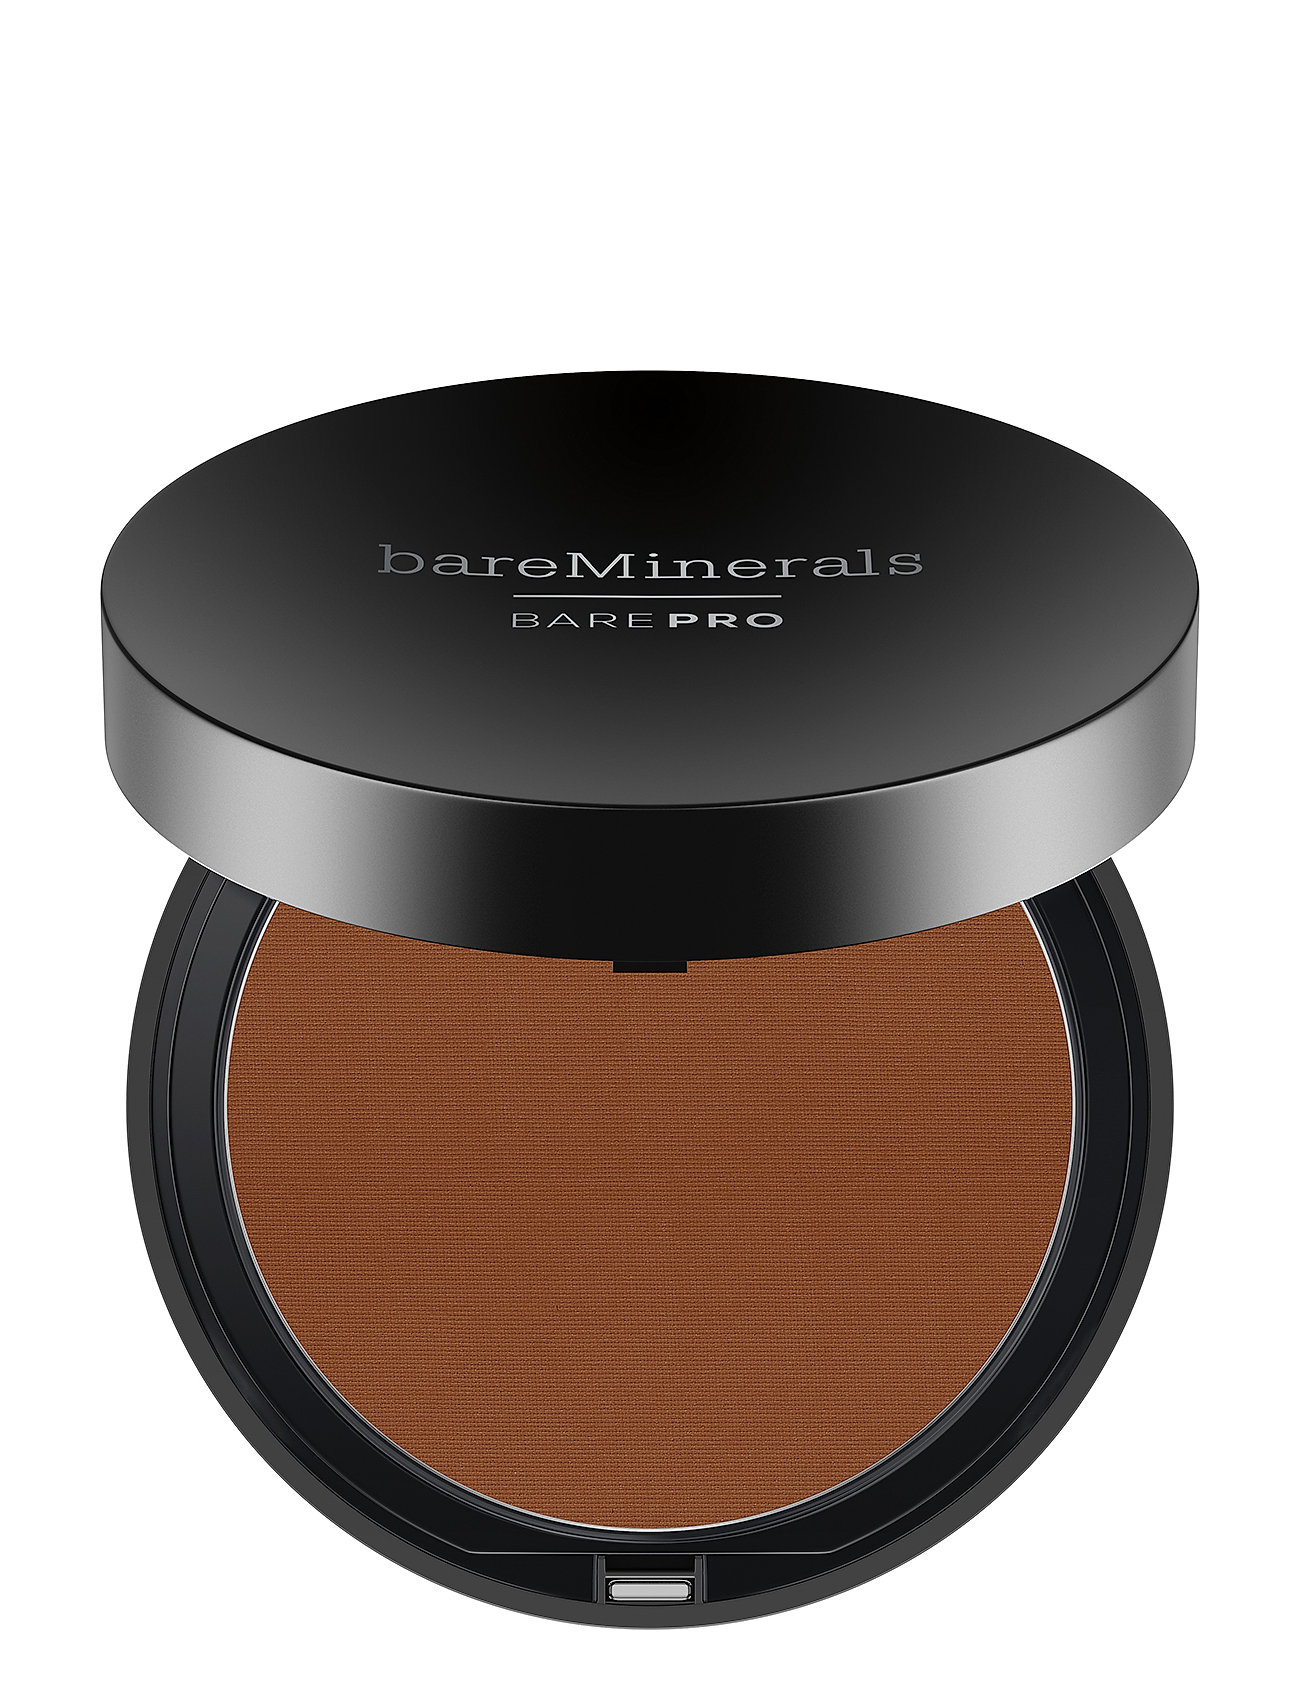 Image of Barepro Performance Wear Powder Foundation Foundation Makeup BareMinerals (3251433729)